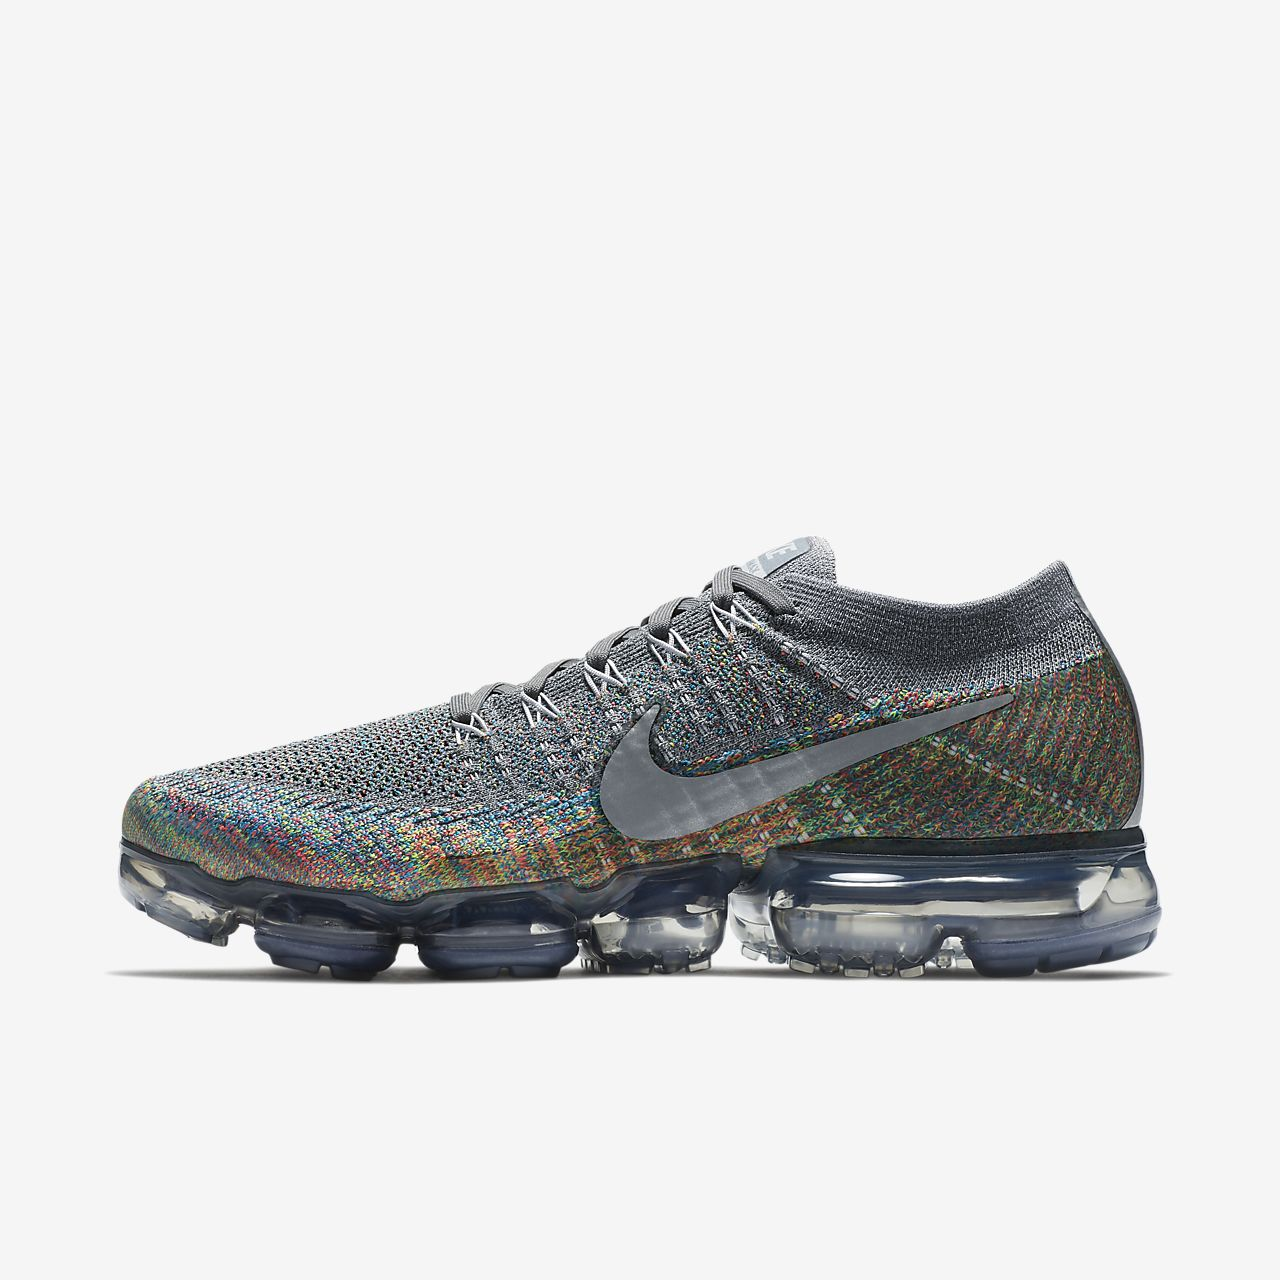 new concept 11818 023c8 ... Nike Air VaporMax Flyknit Men s Shoe